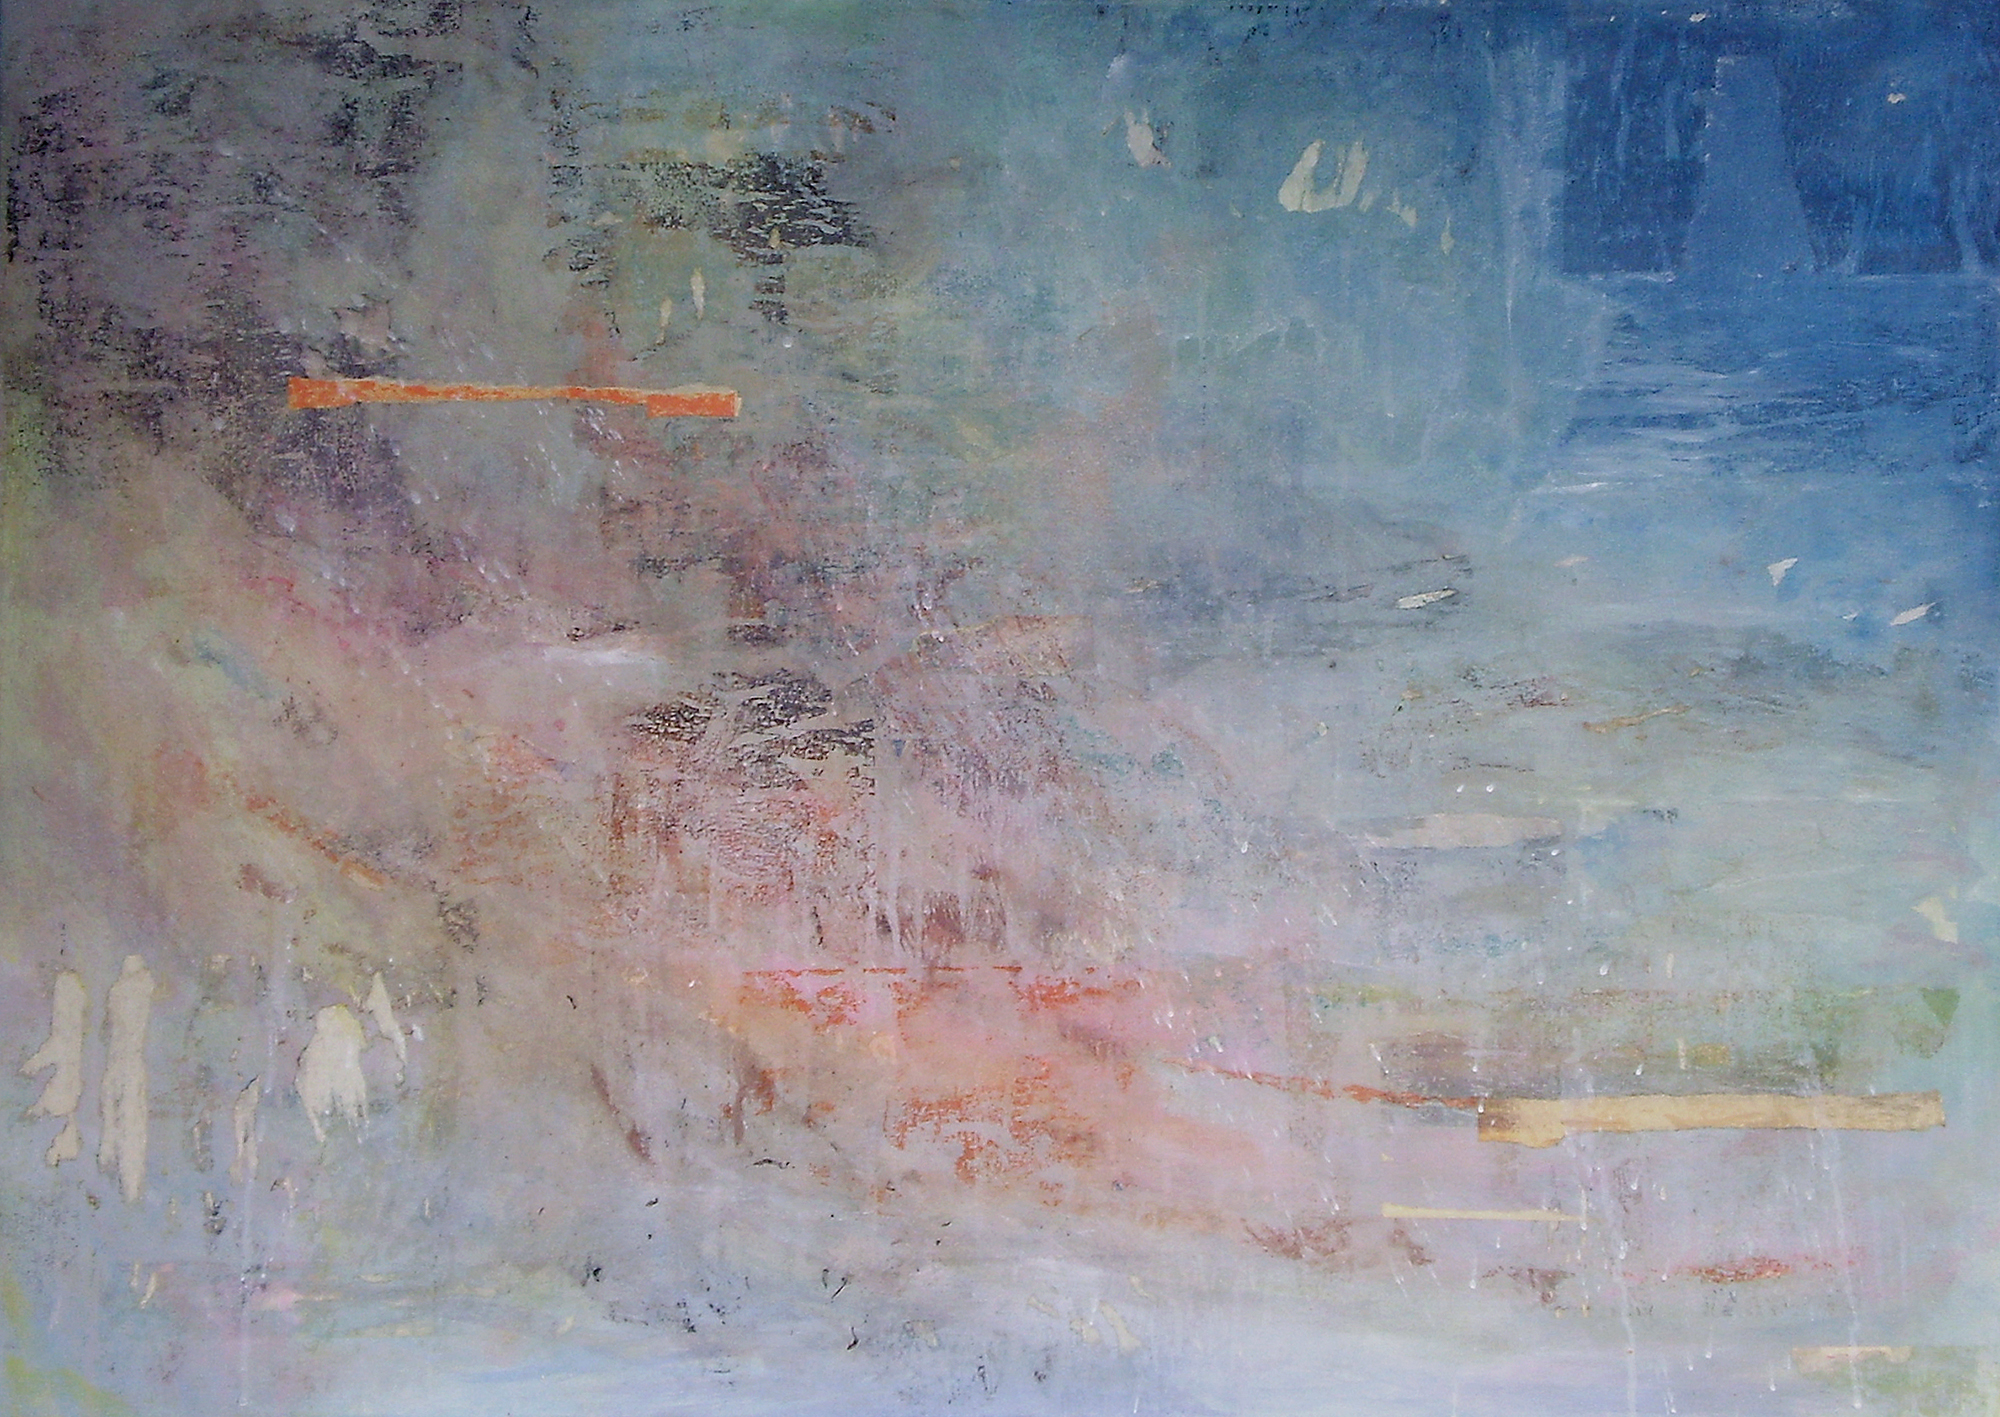 Dusk, 2008, mixed media on canvas, 30 x 42 in, SOLD